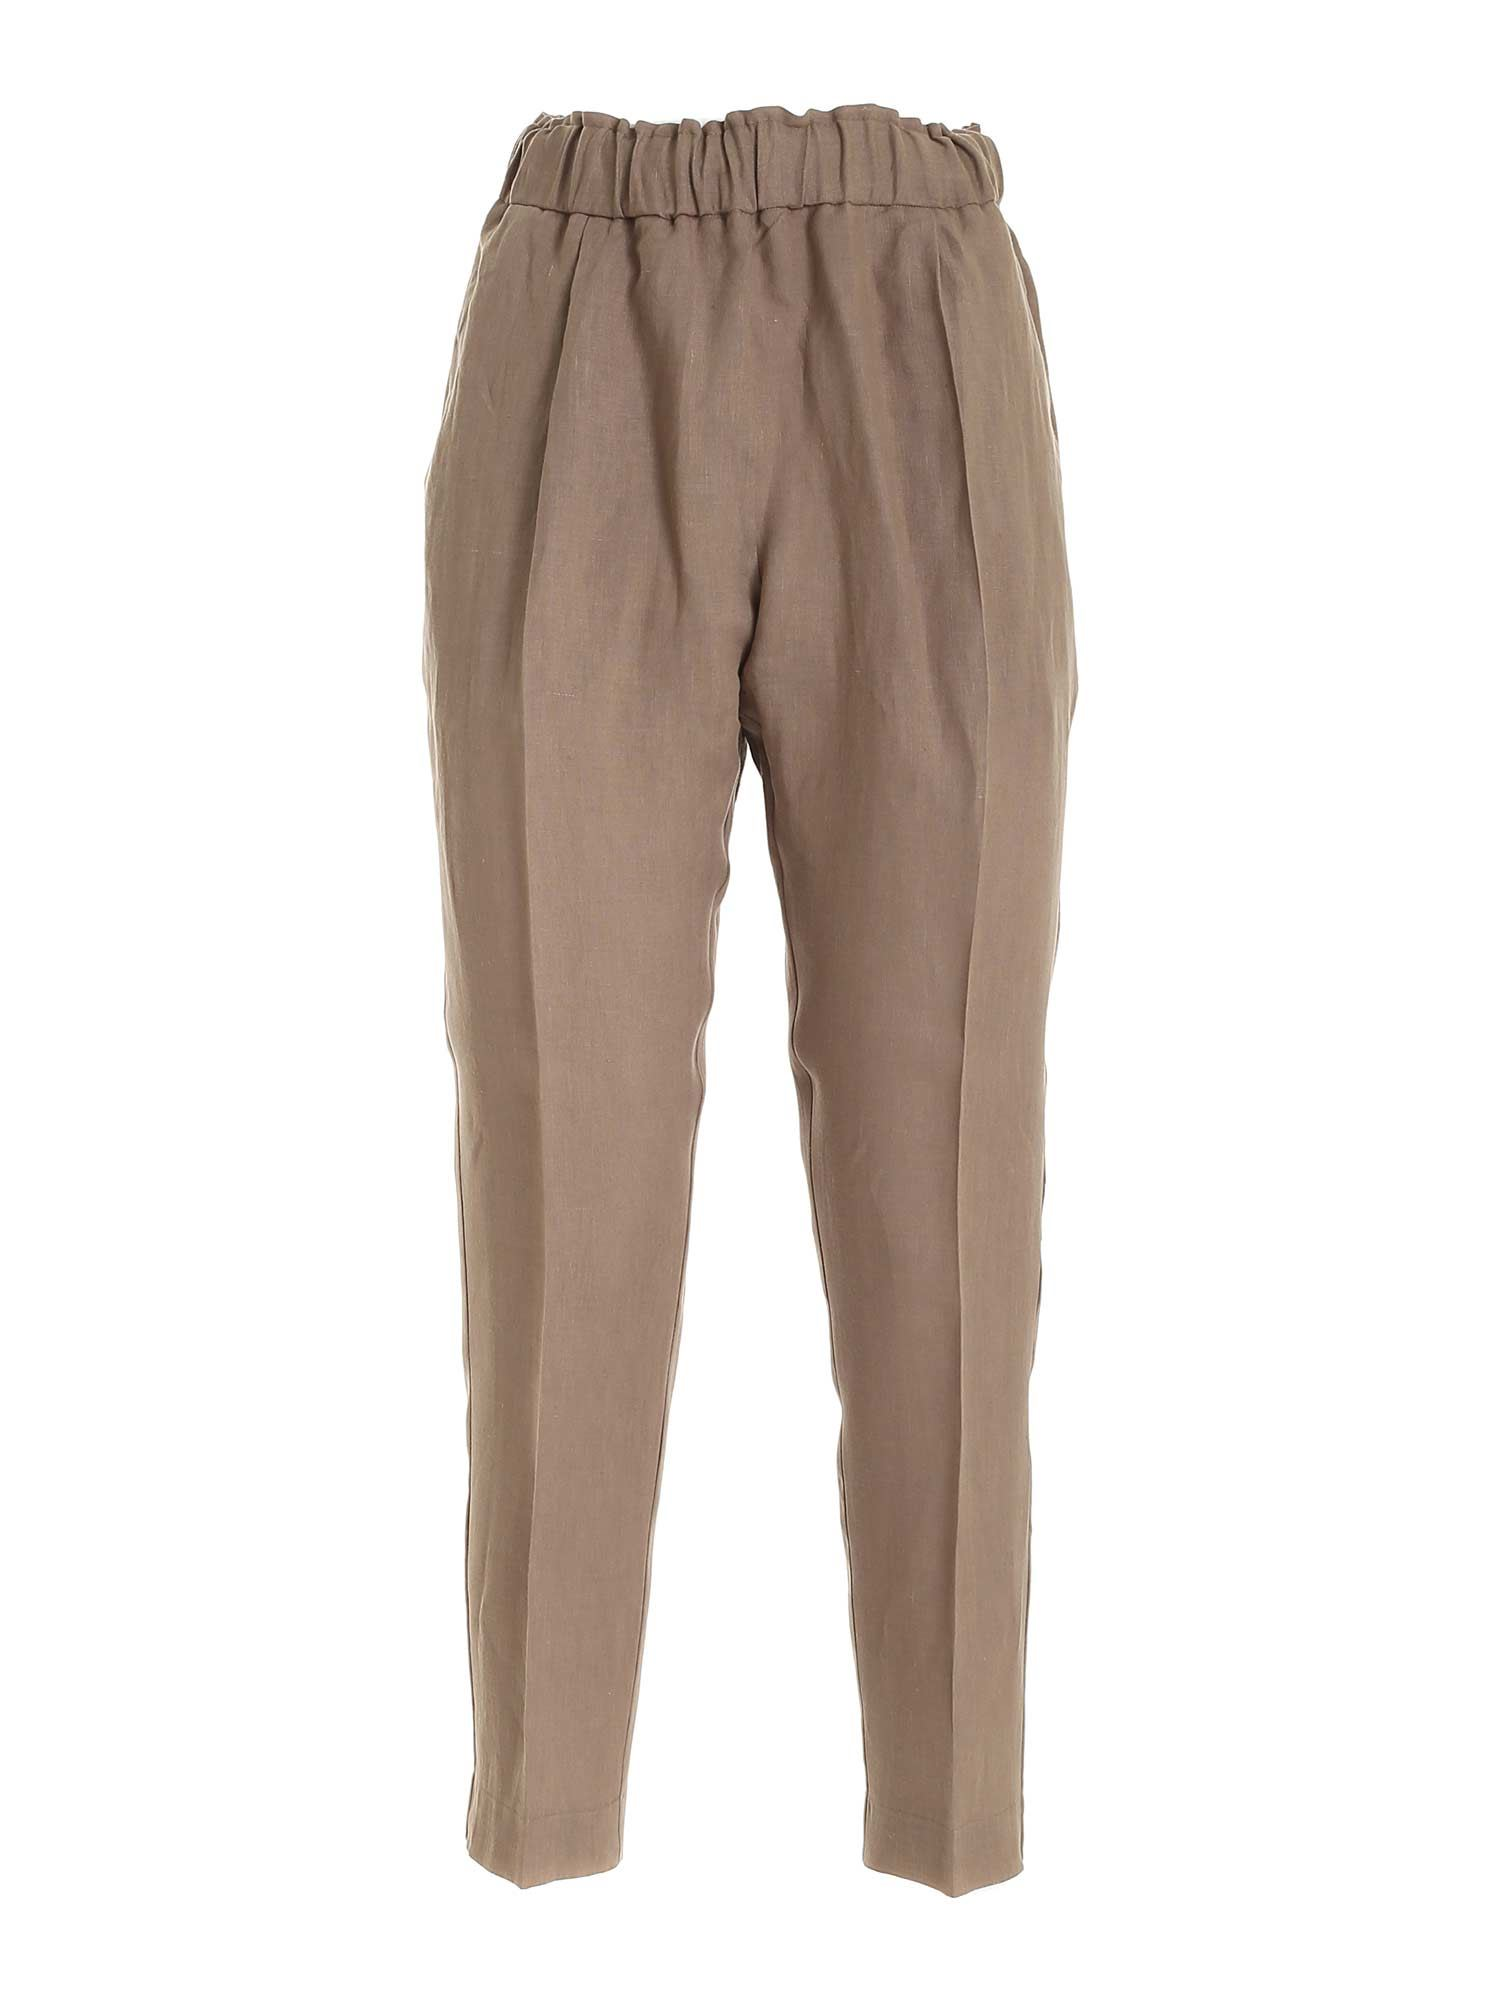 Le Tricot Perugia Pants LINEN PANTS IN BROWN